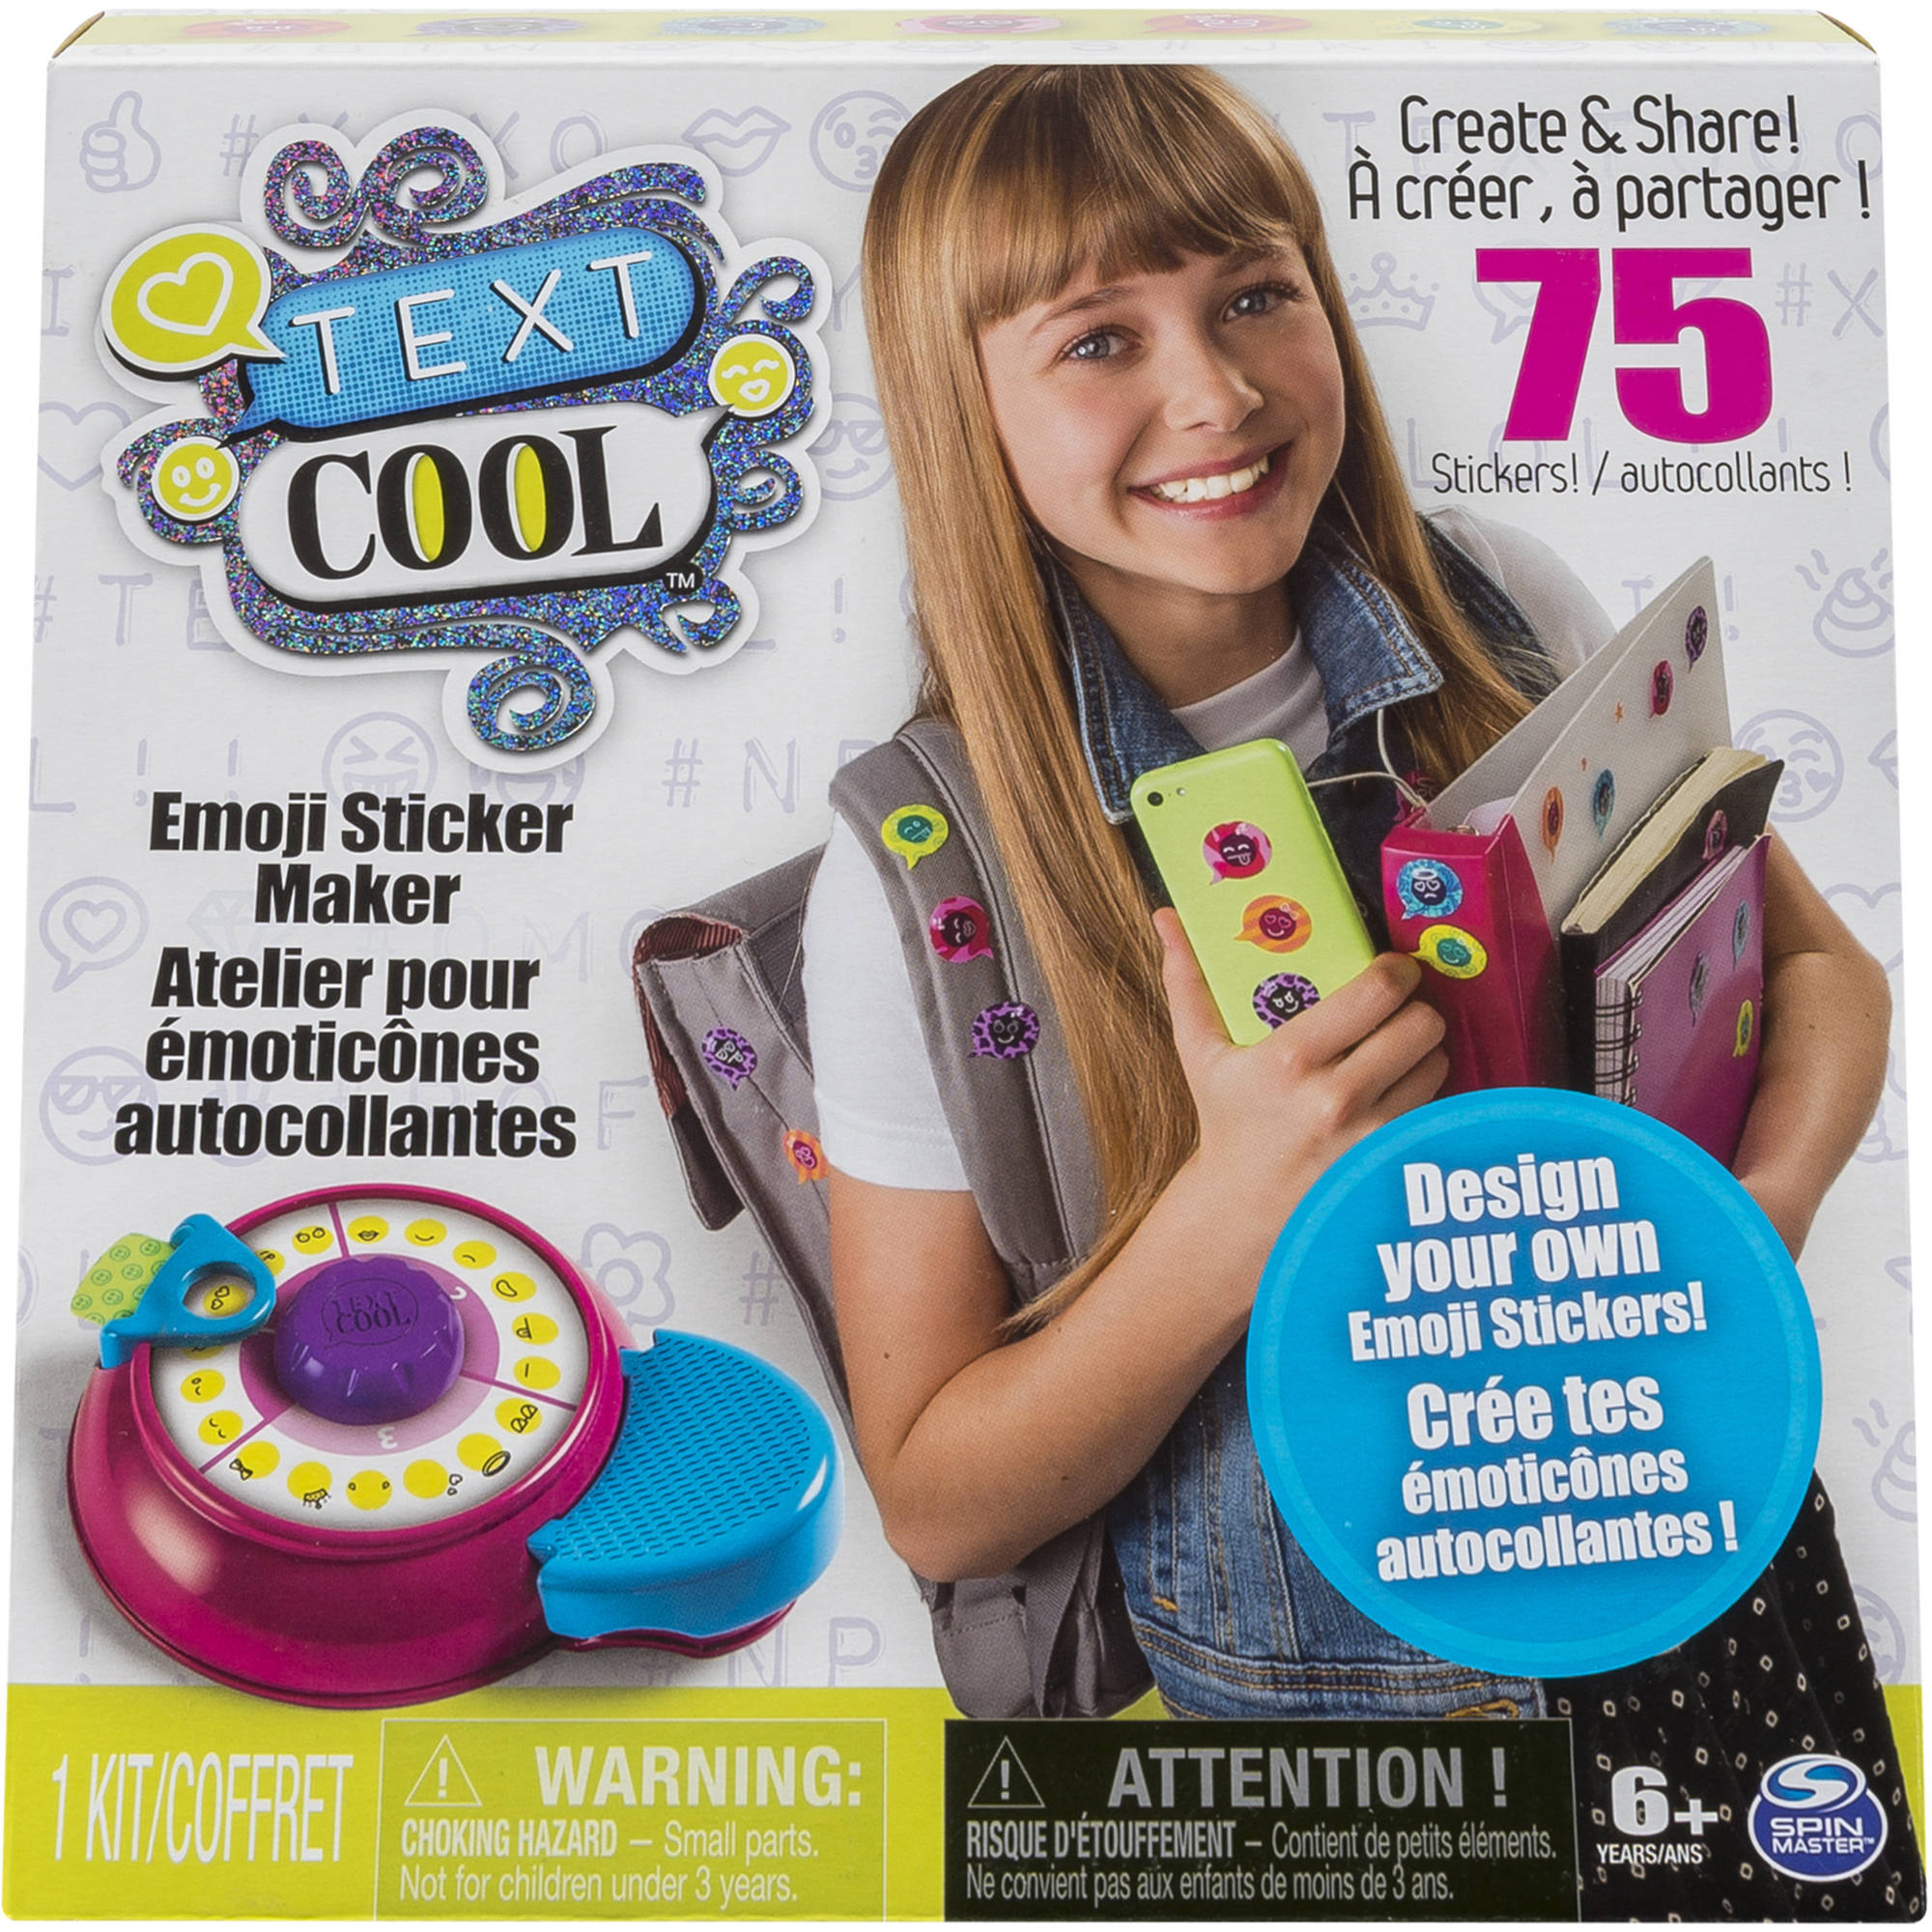 Text Cool, Emoji Sticker Maker Kit - Walmart.com